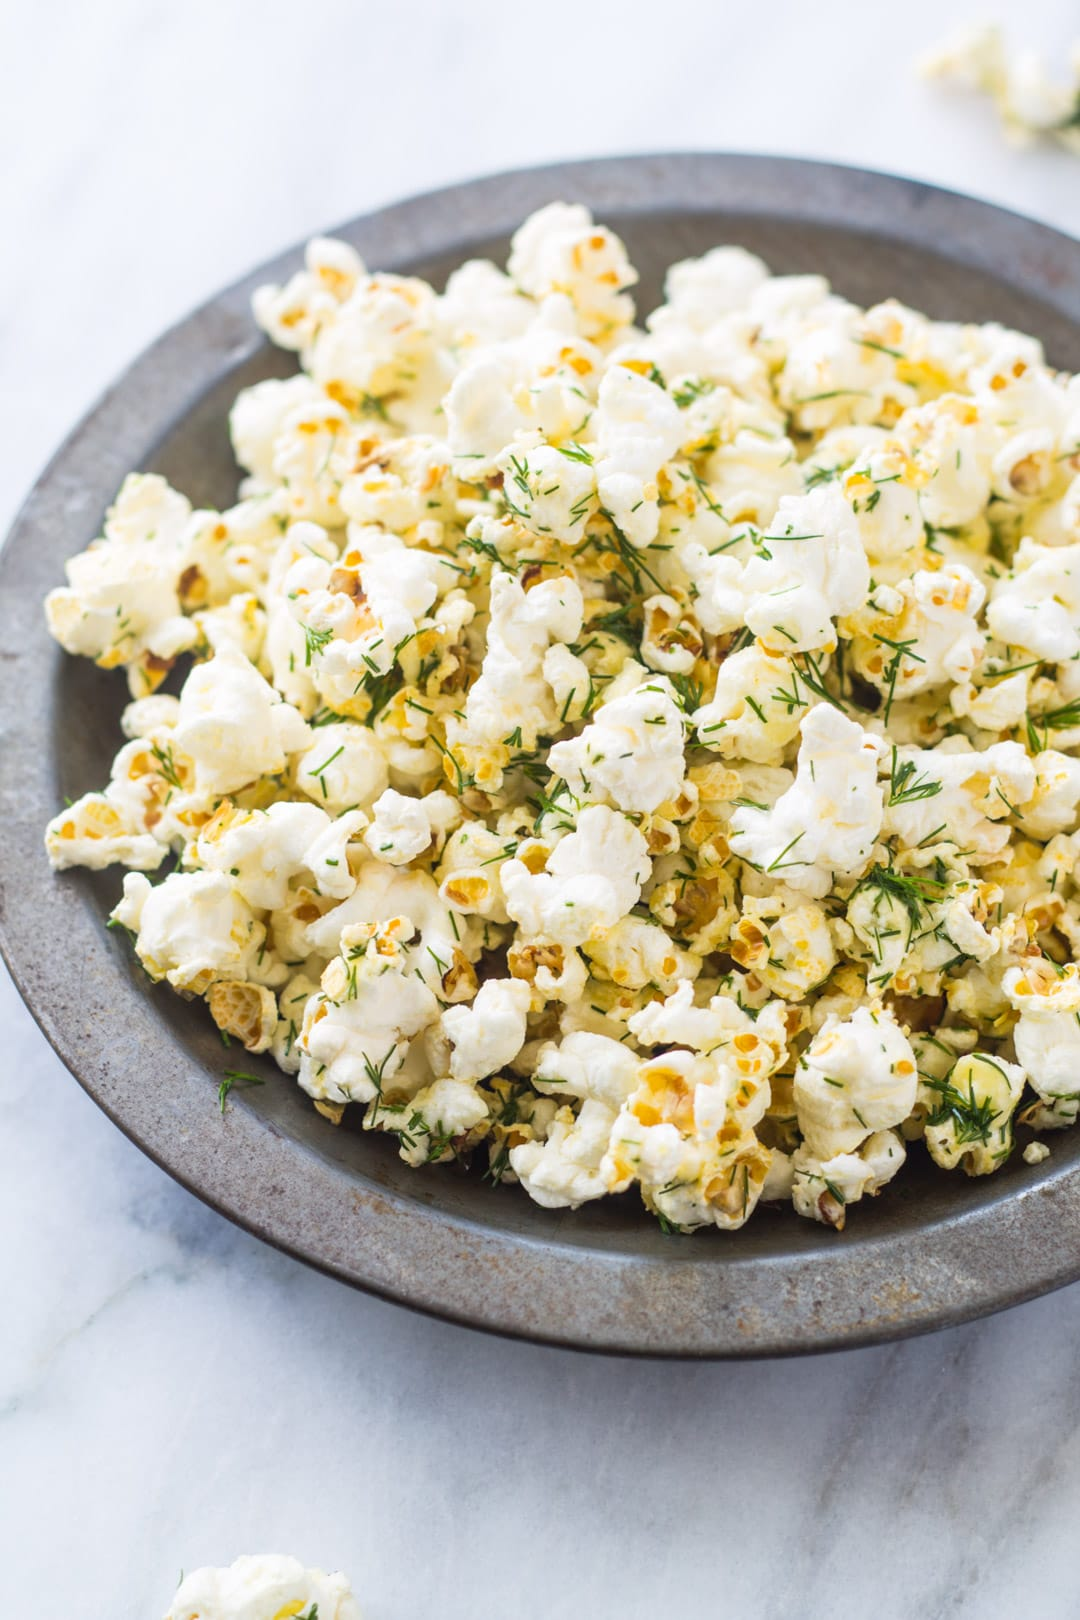 Bowl of low FODMAP dill pickle popcorn